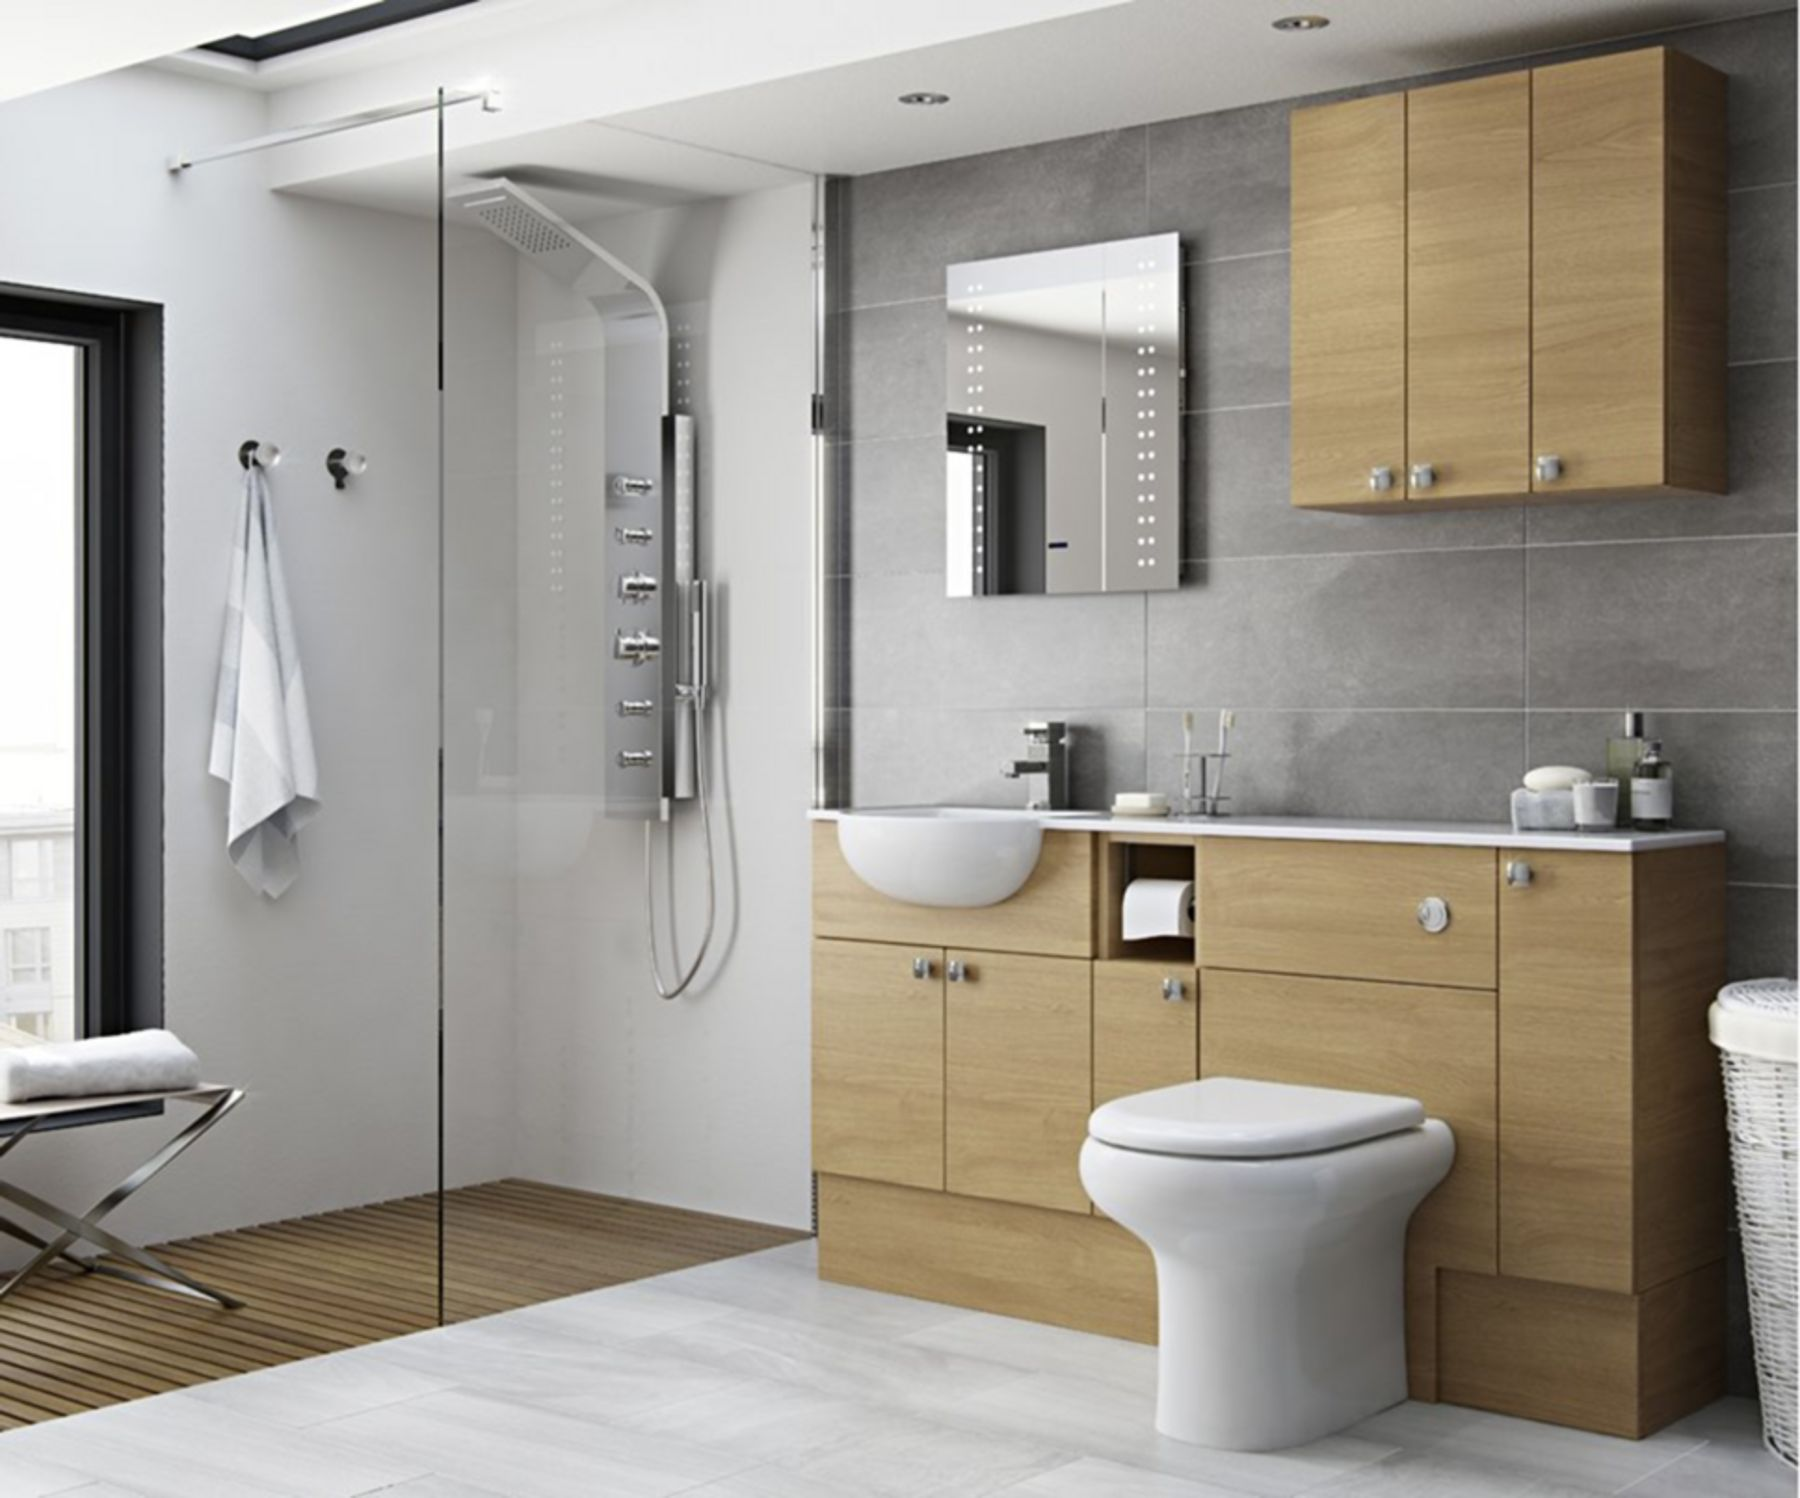 30 Awesome Modern Small Bathroom Designs For Small Home Ideas Bathroom Design Small Modern Bathroom Design Small Modern Bathroom